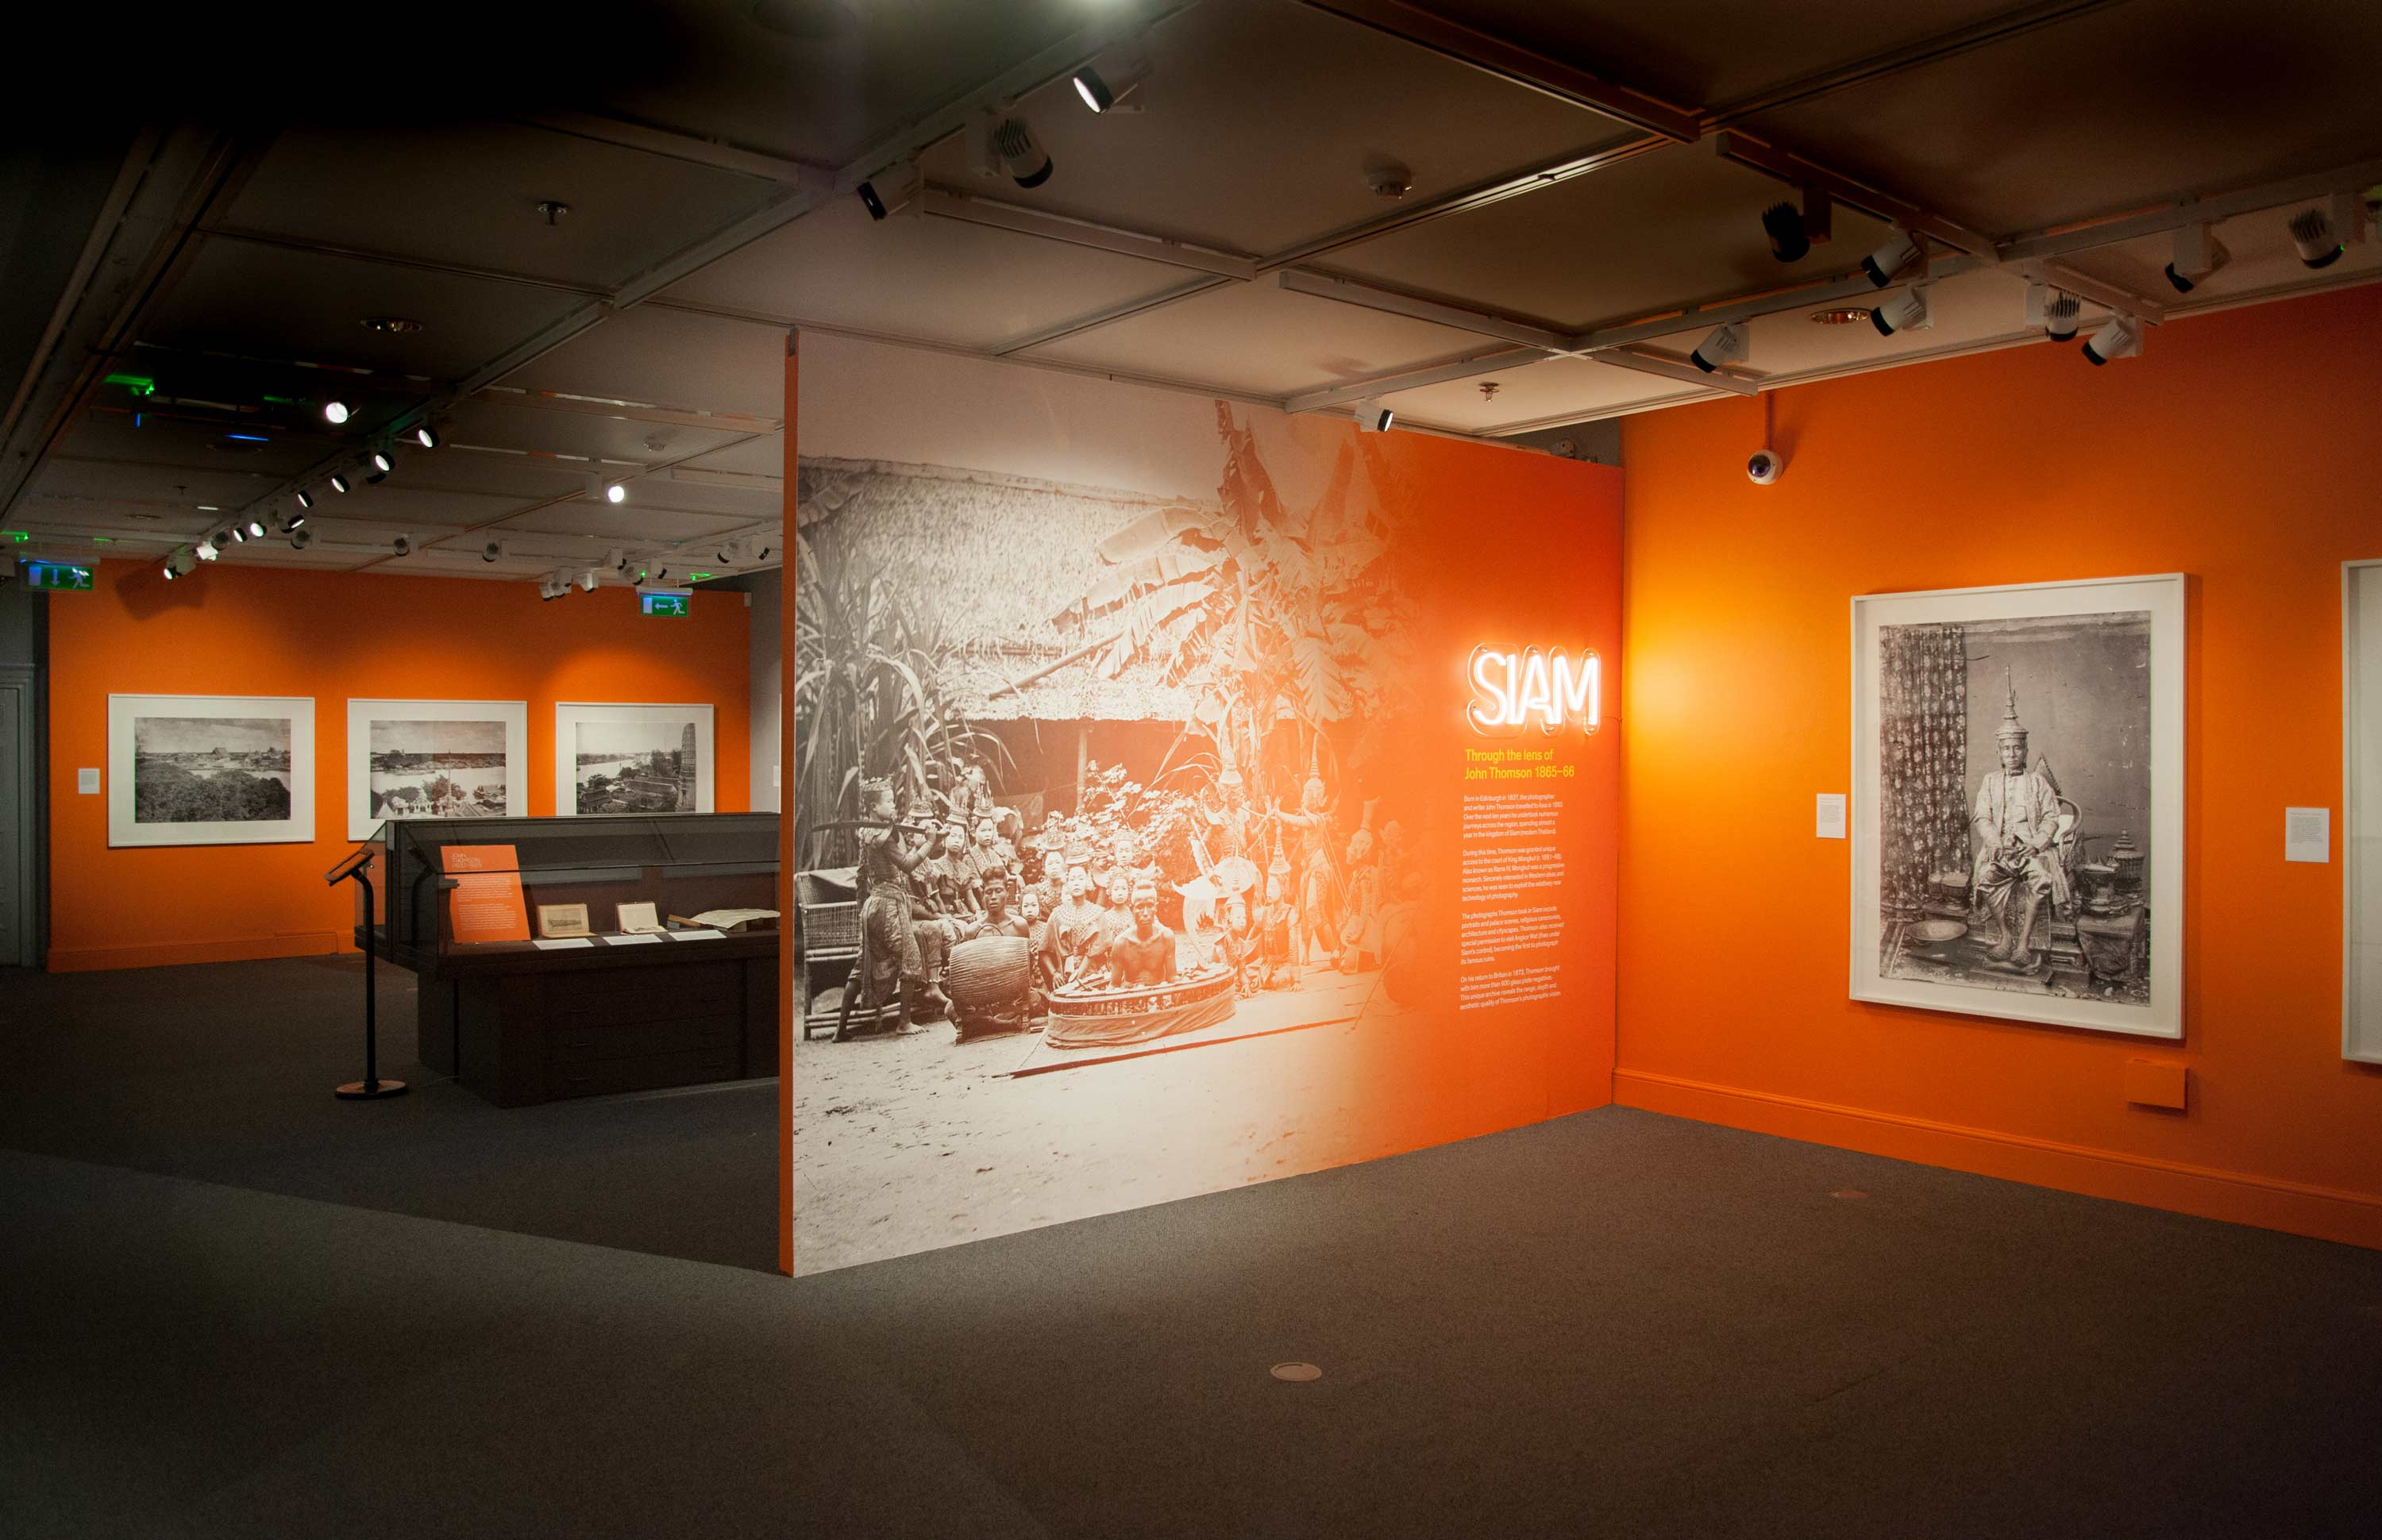 Cover image: Siam: Through the Lens of John Thomson